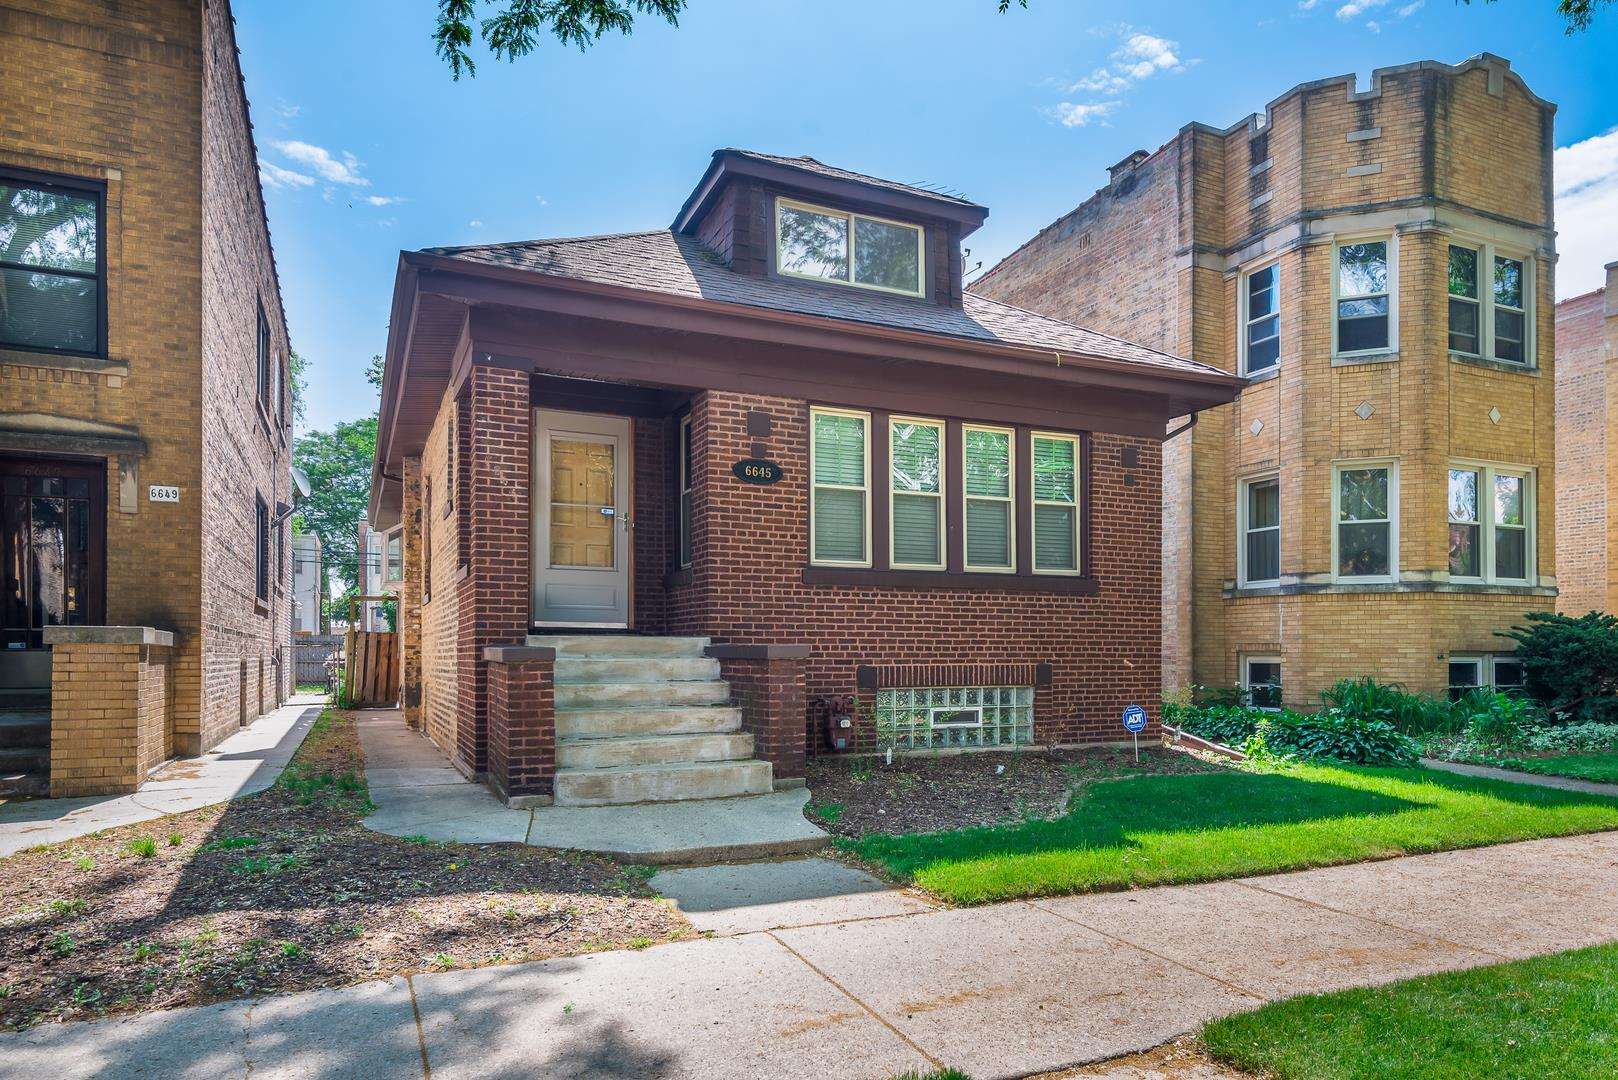 6645 N CAMPBELL Avenue, Chicago, IL 60645 - #: 11120168